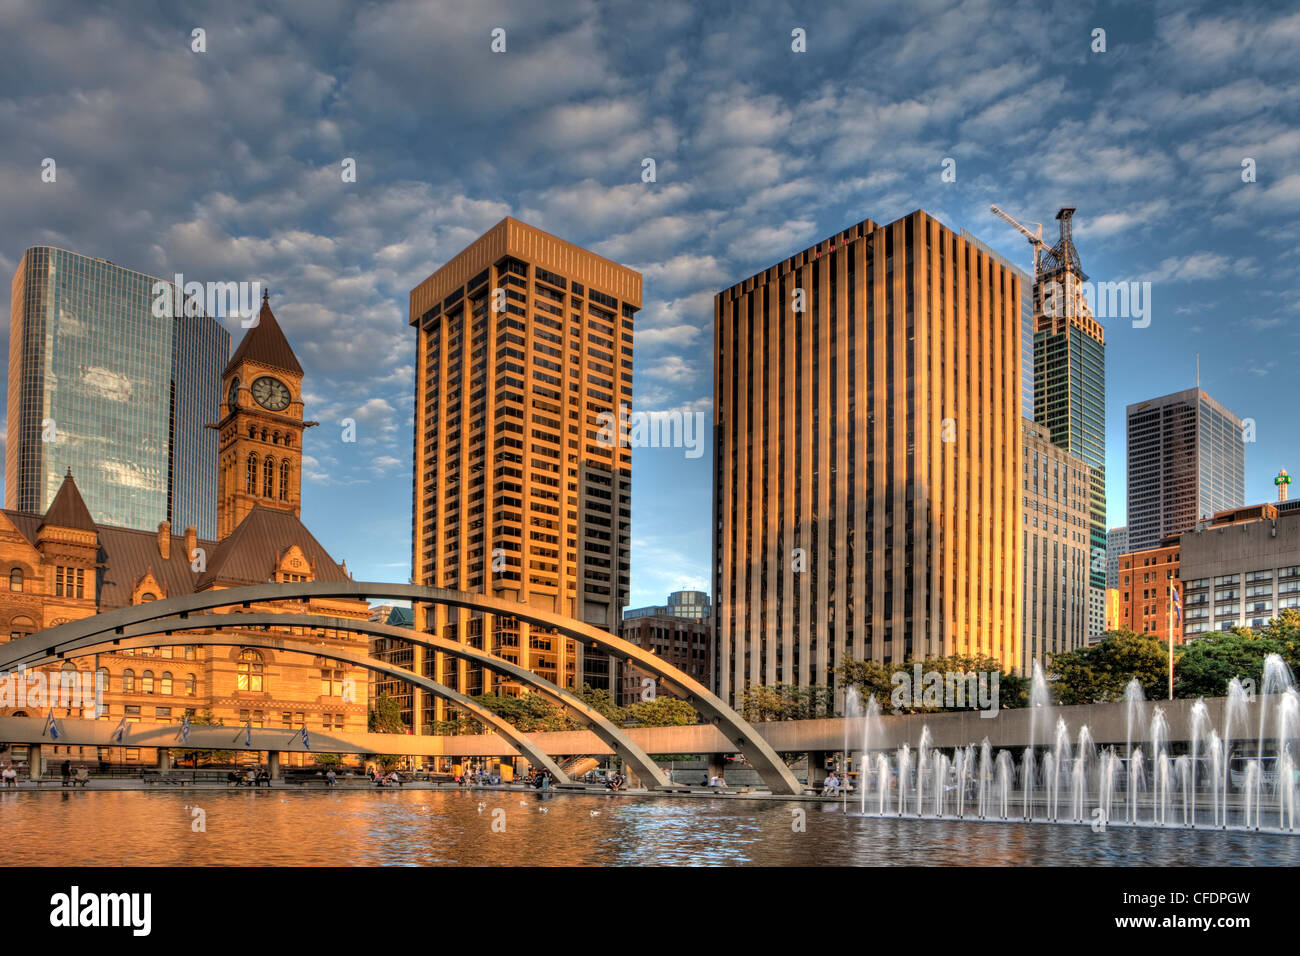 Evening, Old City Hall and City Hall Pool, Downtown Toronto, Ontario, Canada - Stock Image